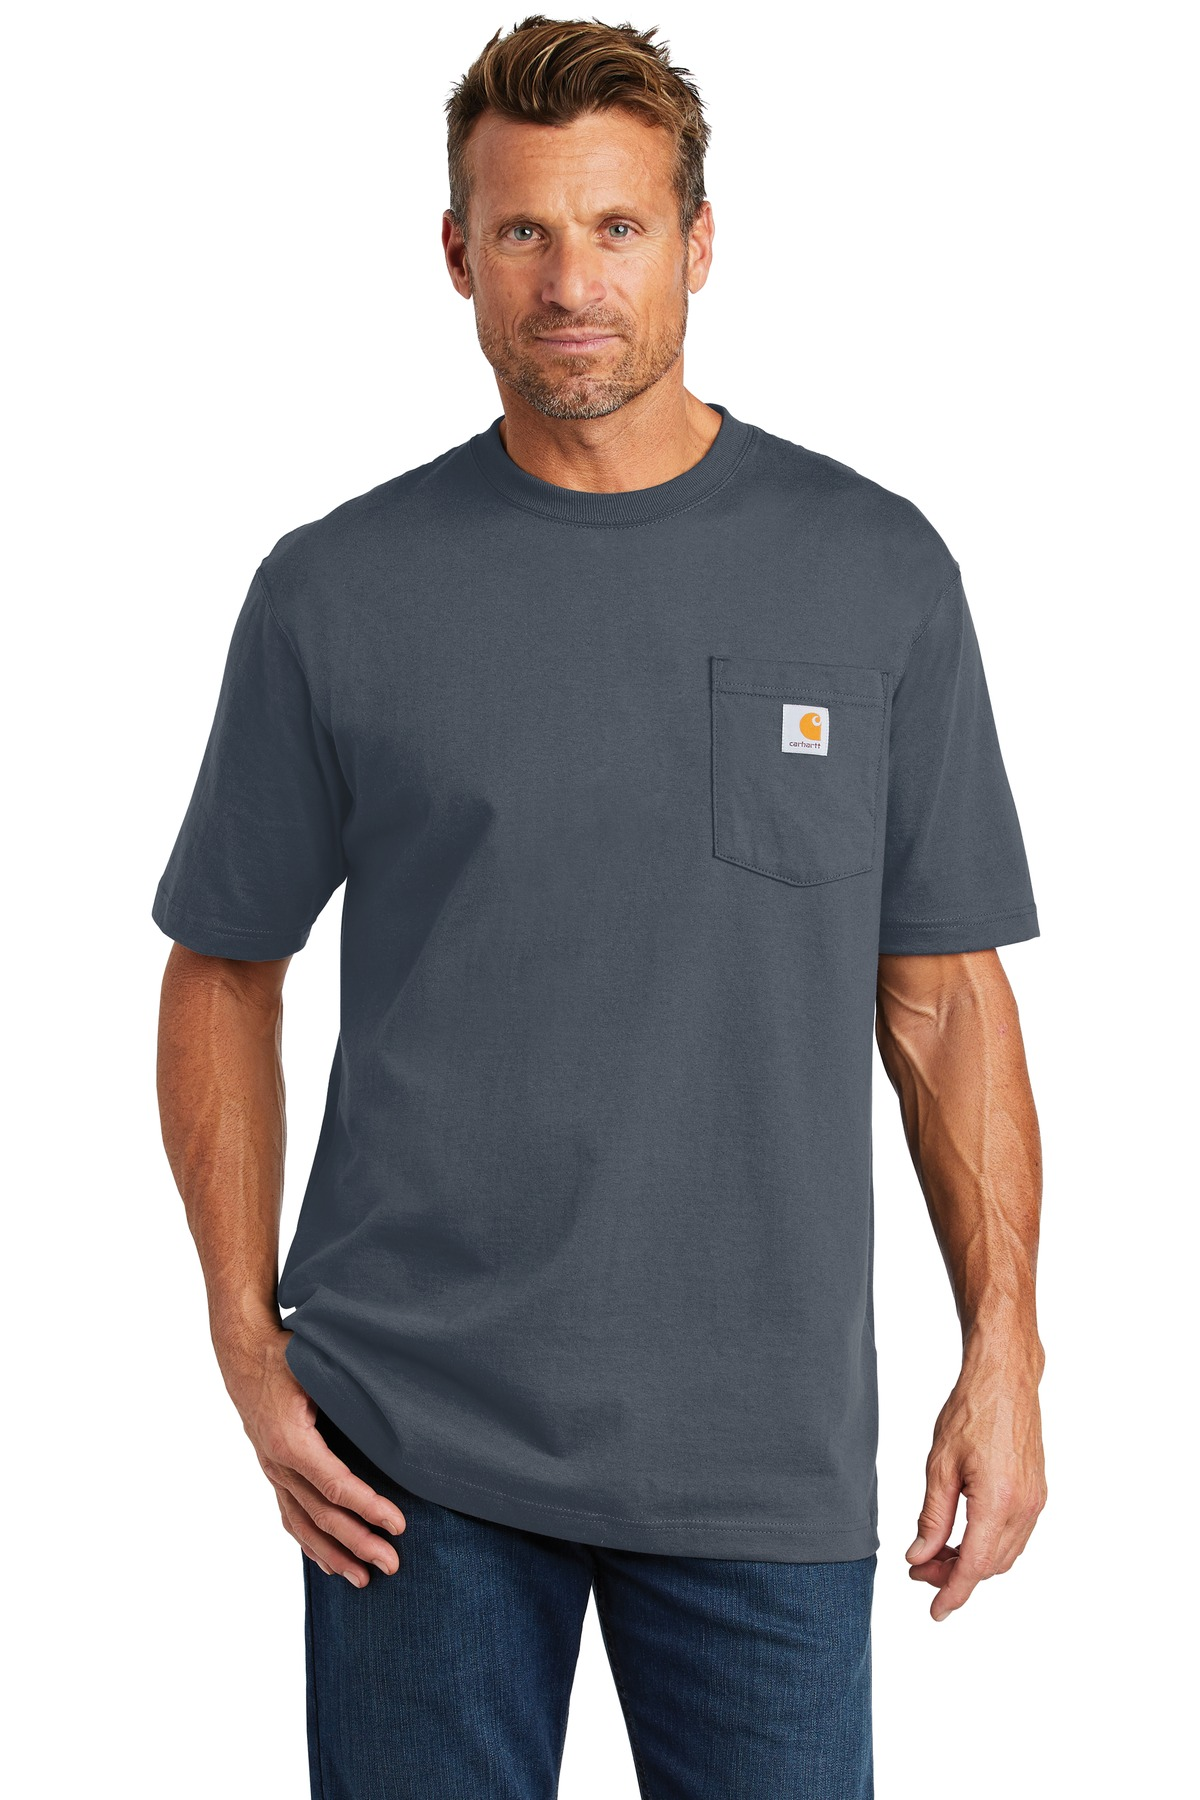 Carhartt  ®  Workwear Pocket Short Sleeve T-Shirt. CTK87 - Bluestone